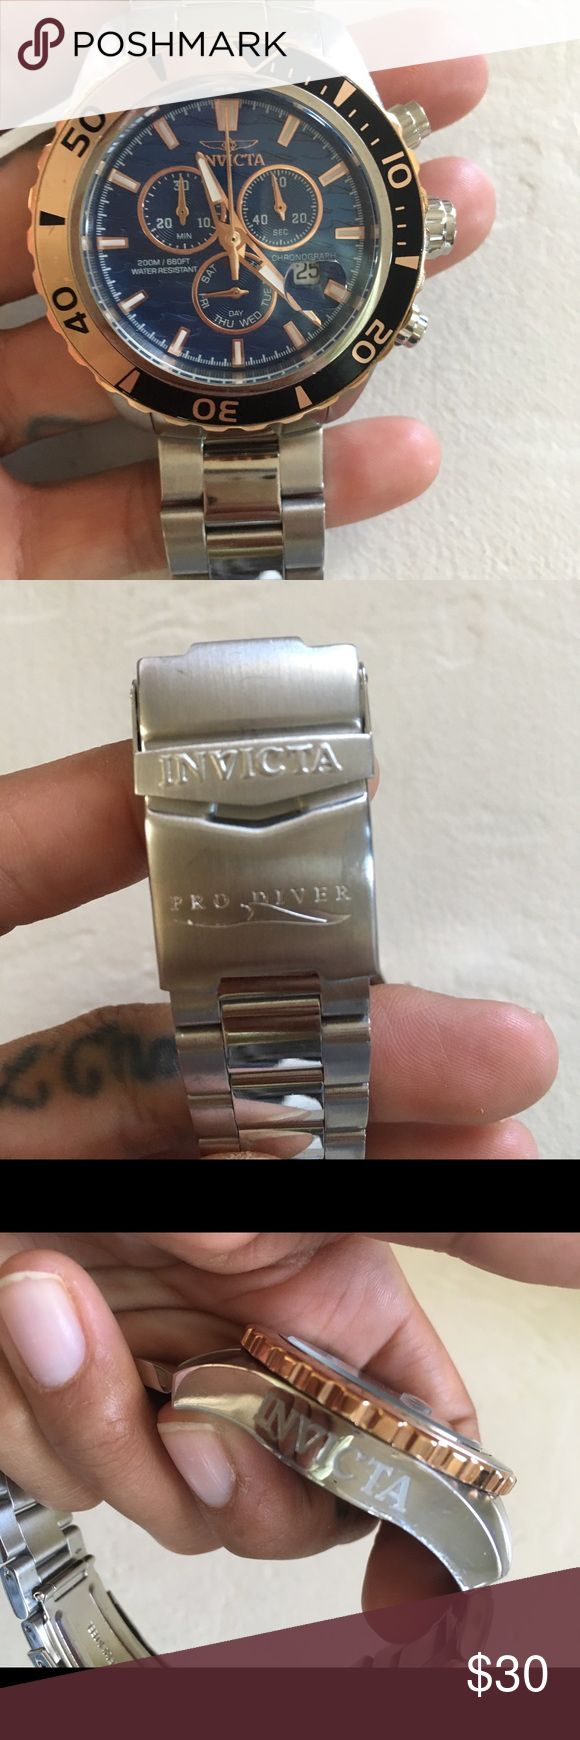 Men's Invicta Watch Men's Invicta Watch//Some signs of wear present, light scratches to face and band//Unsure if Watch works properly so selling for parts//No box//No battery Invicta Accessories Watches